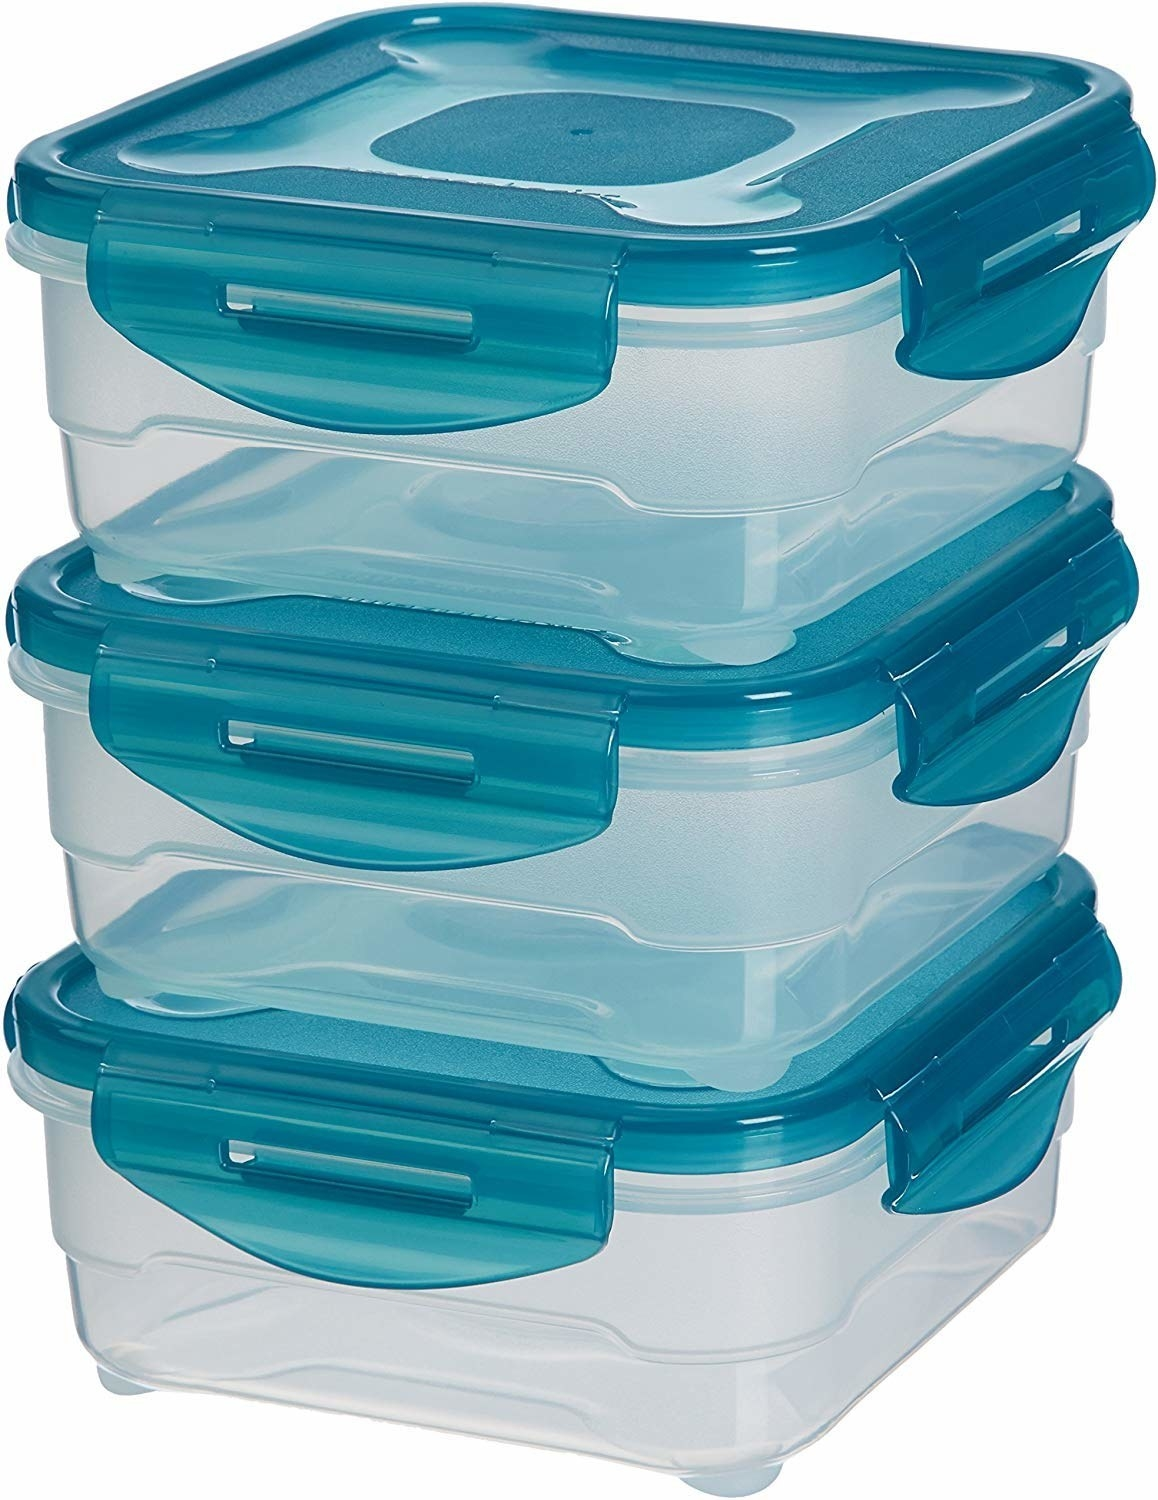 A set of plastic airtight food storage containers with blue lids